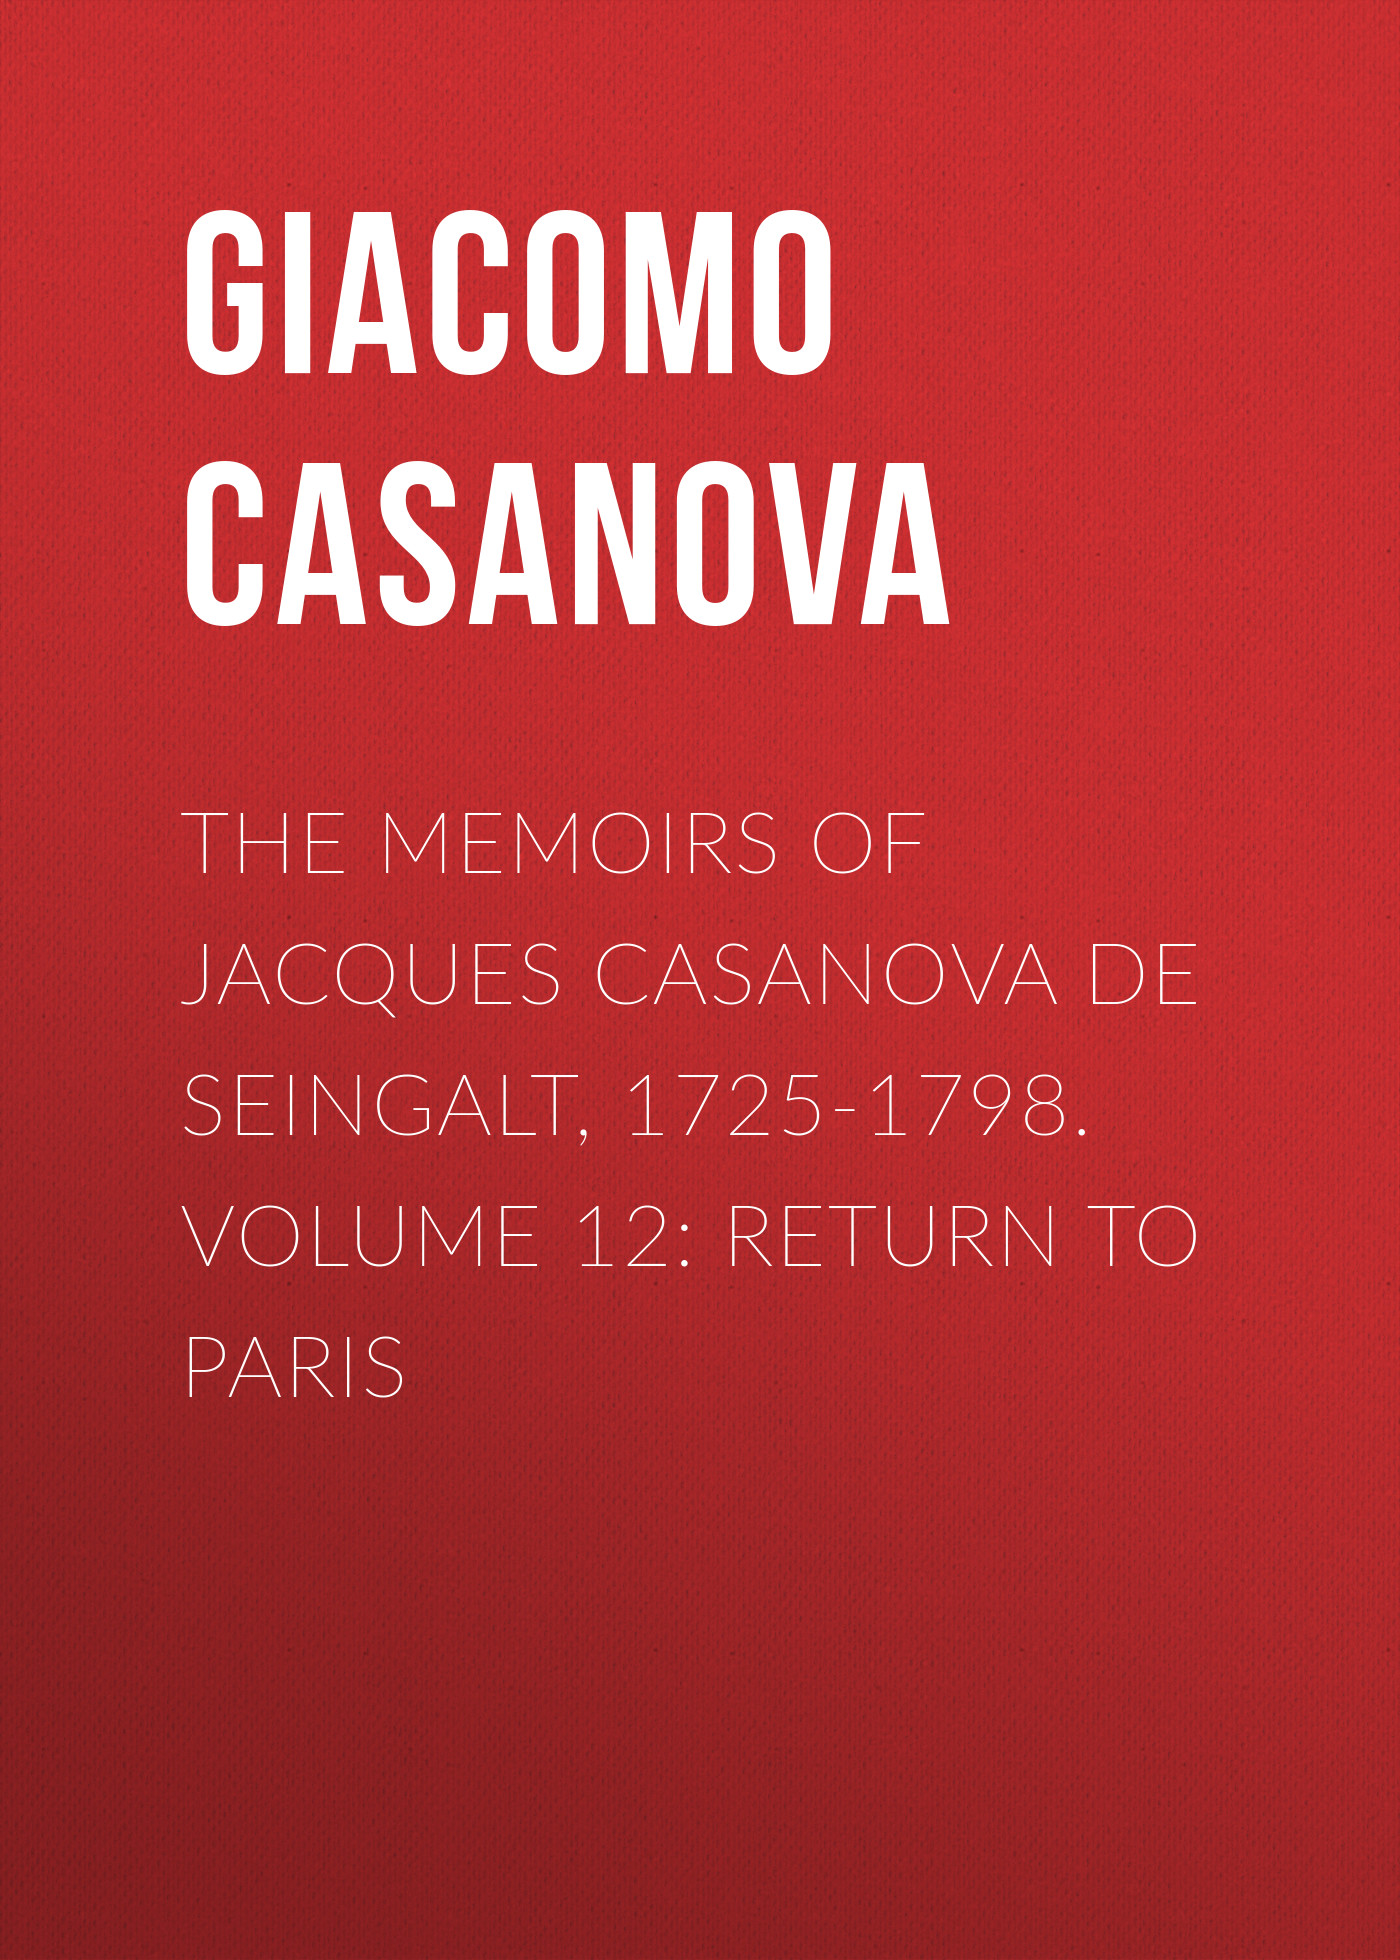 Giacomo Casanova The Memoirs of Jacques Casanova de Seingalt, 1725-1798. Volume 12: Return to Paris vixen return of lion